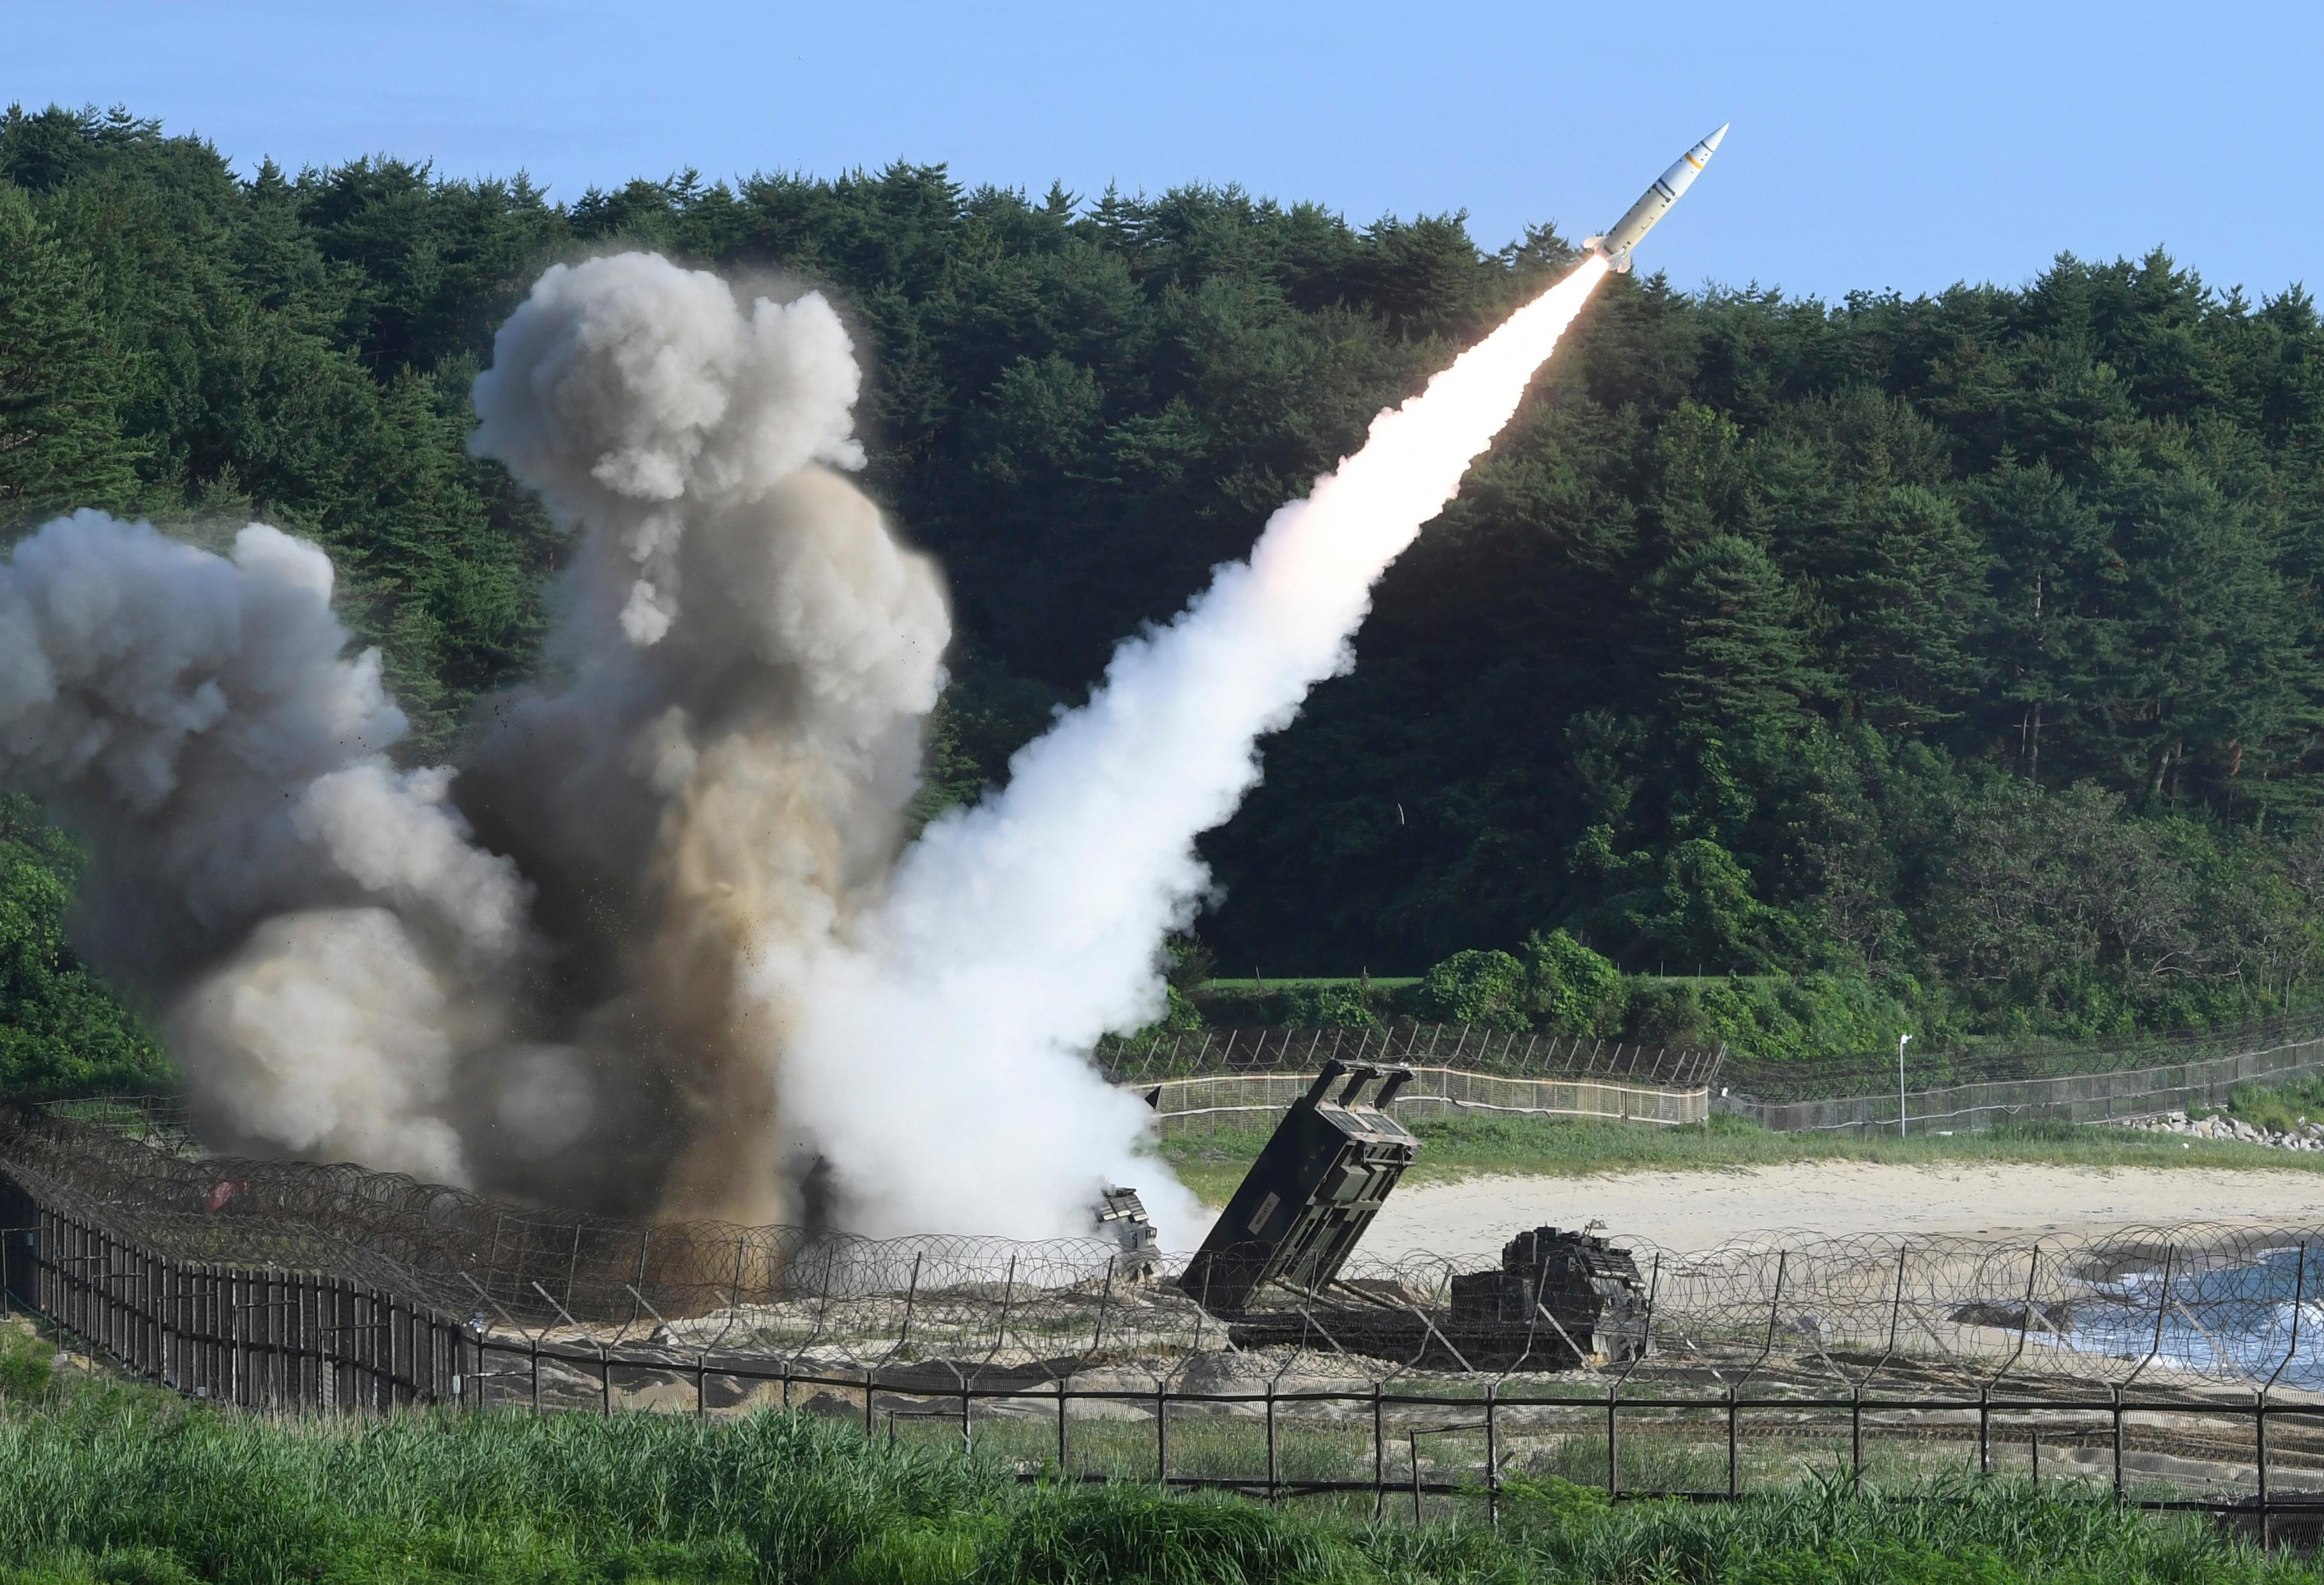 In this photo provided by South Korea Defense Ministry, a U.S. MGM-140 Army Tactical Missile is fired during the combined military exercise between the U.S. and South Korea against North Korea at an undisclosed location in South Korea, Wednesday, July 5, 2017. (South Korea Defense Ministry via AP)